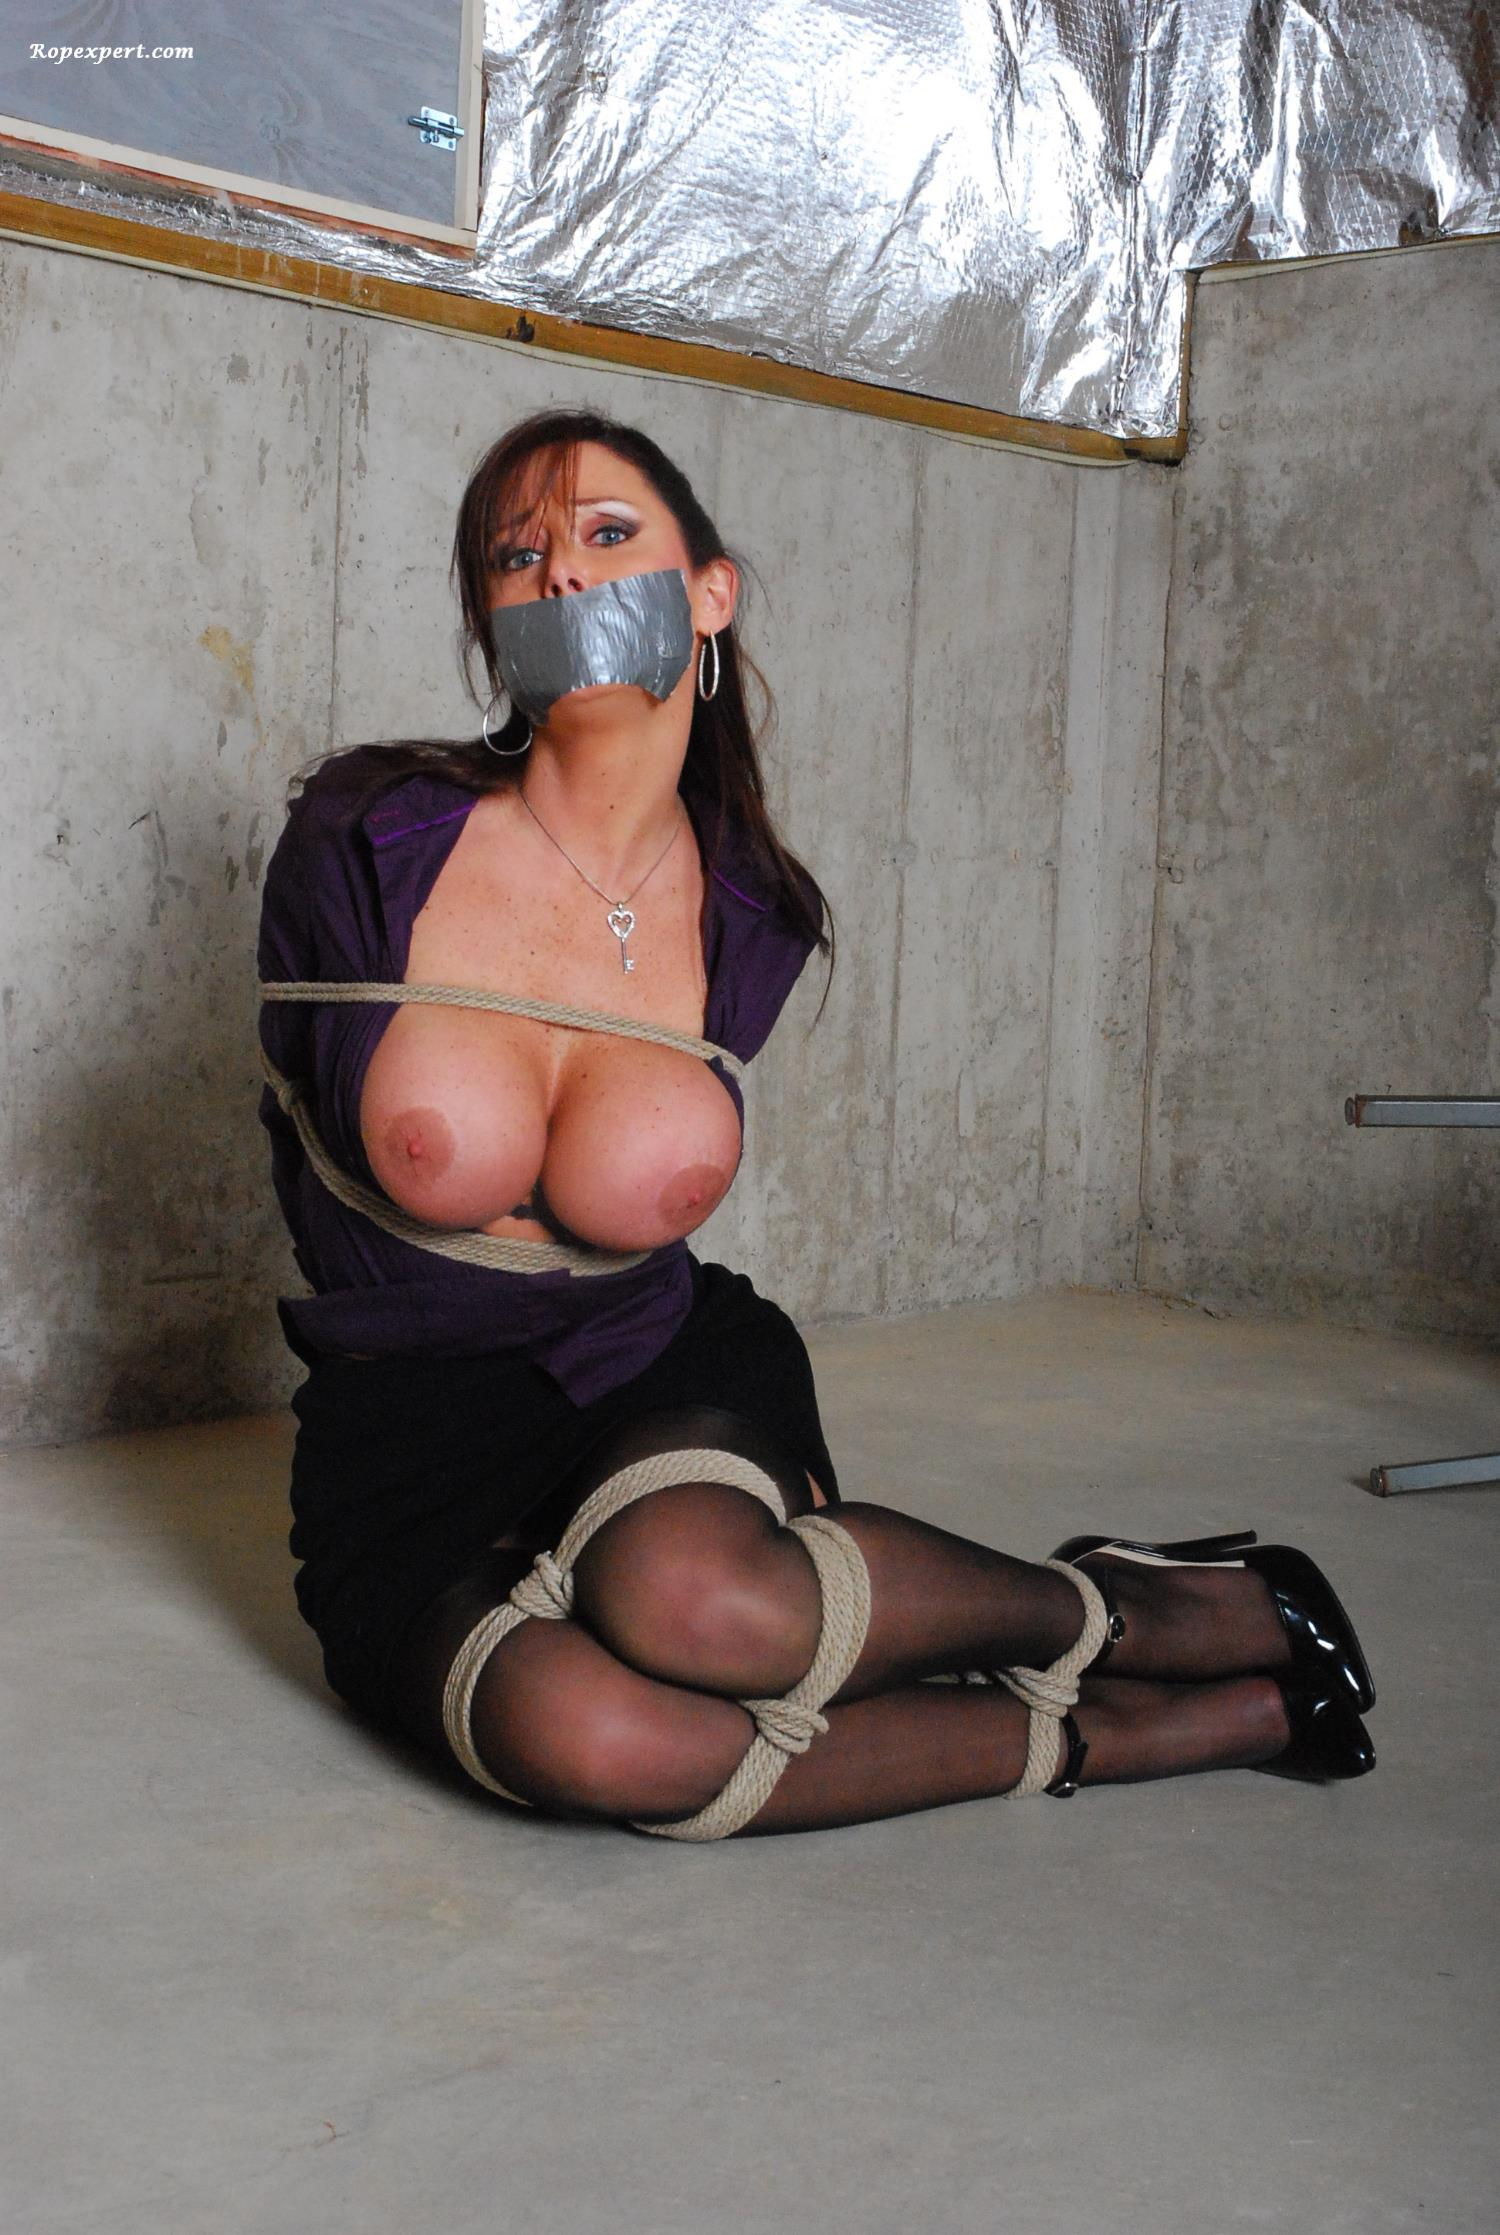 MILF is being abducted and posing in bondage with her boobs exposed